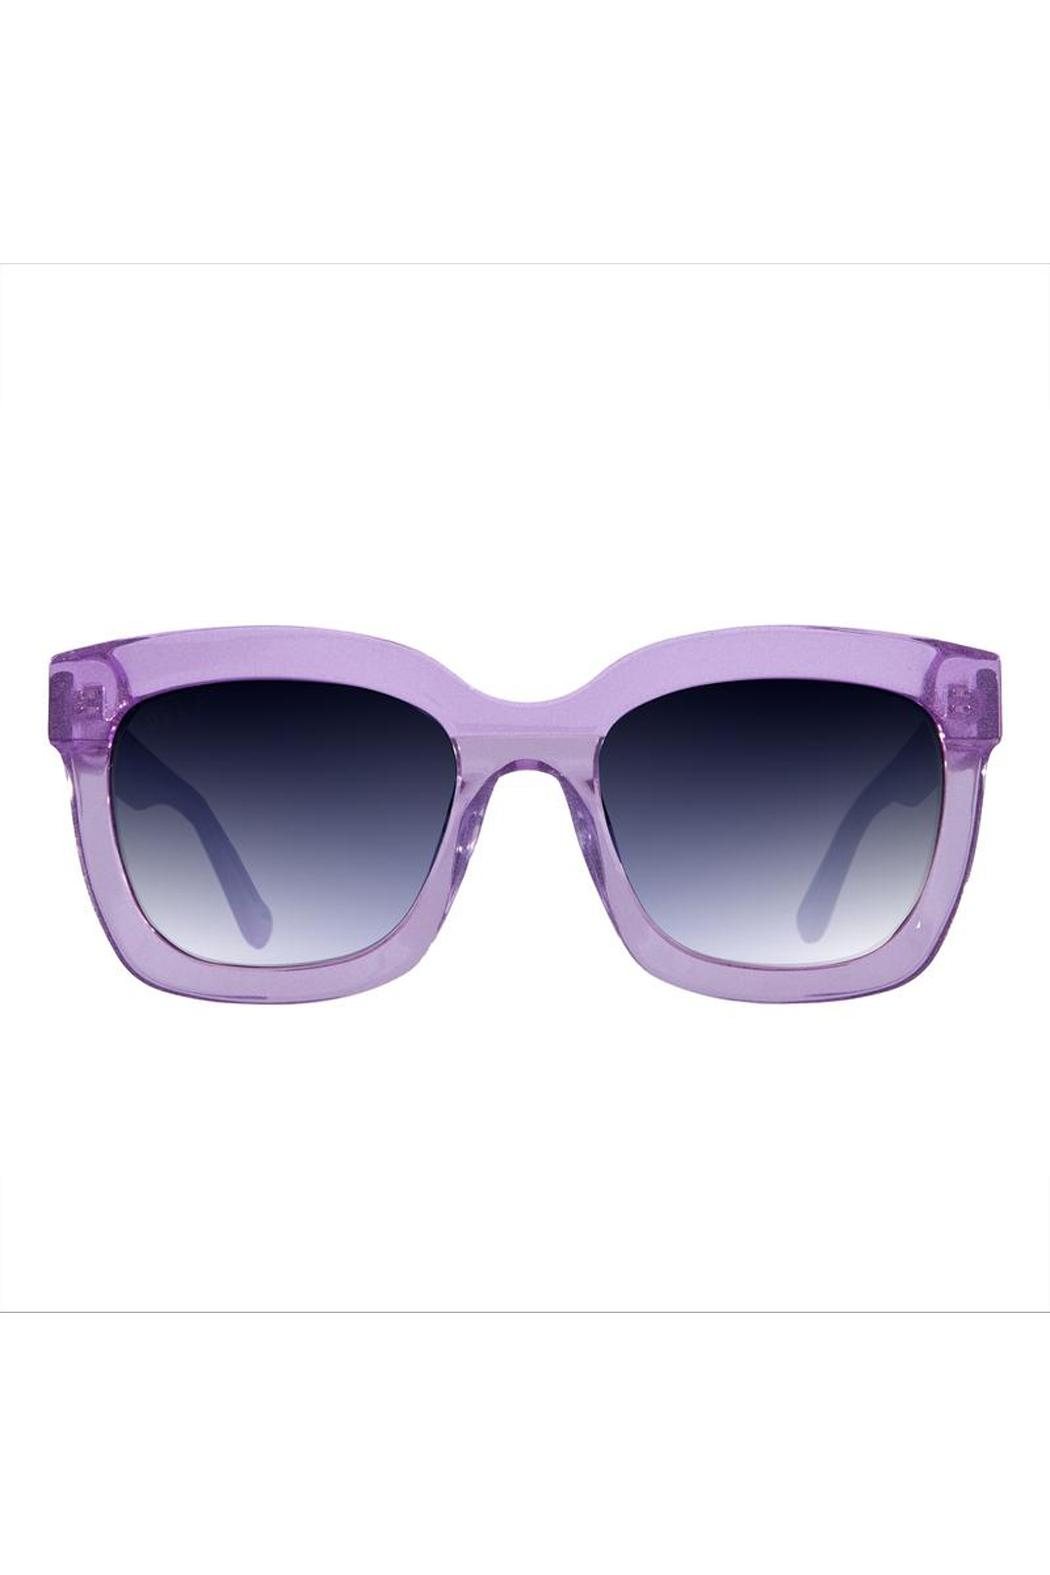 Diff Eyewear Classic Square-Framed Sunglasses - Front Cropped Image